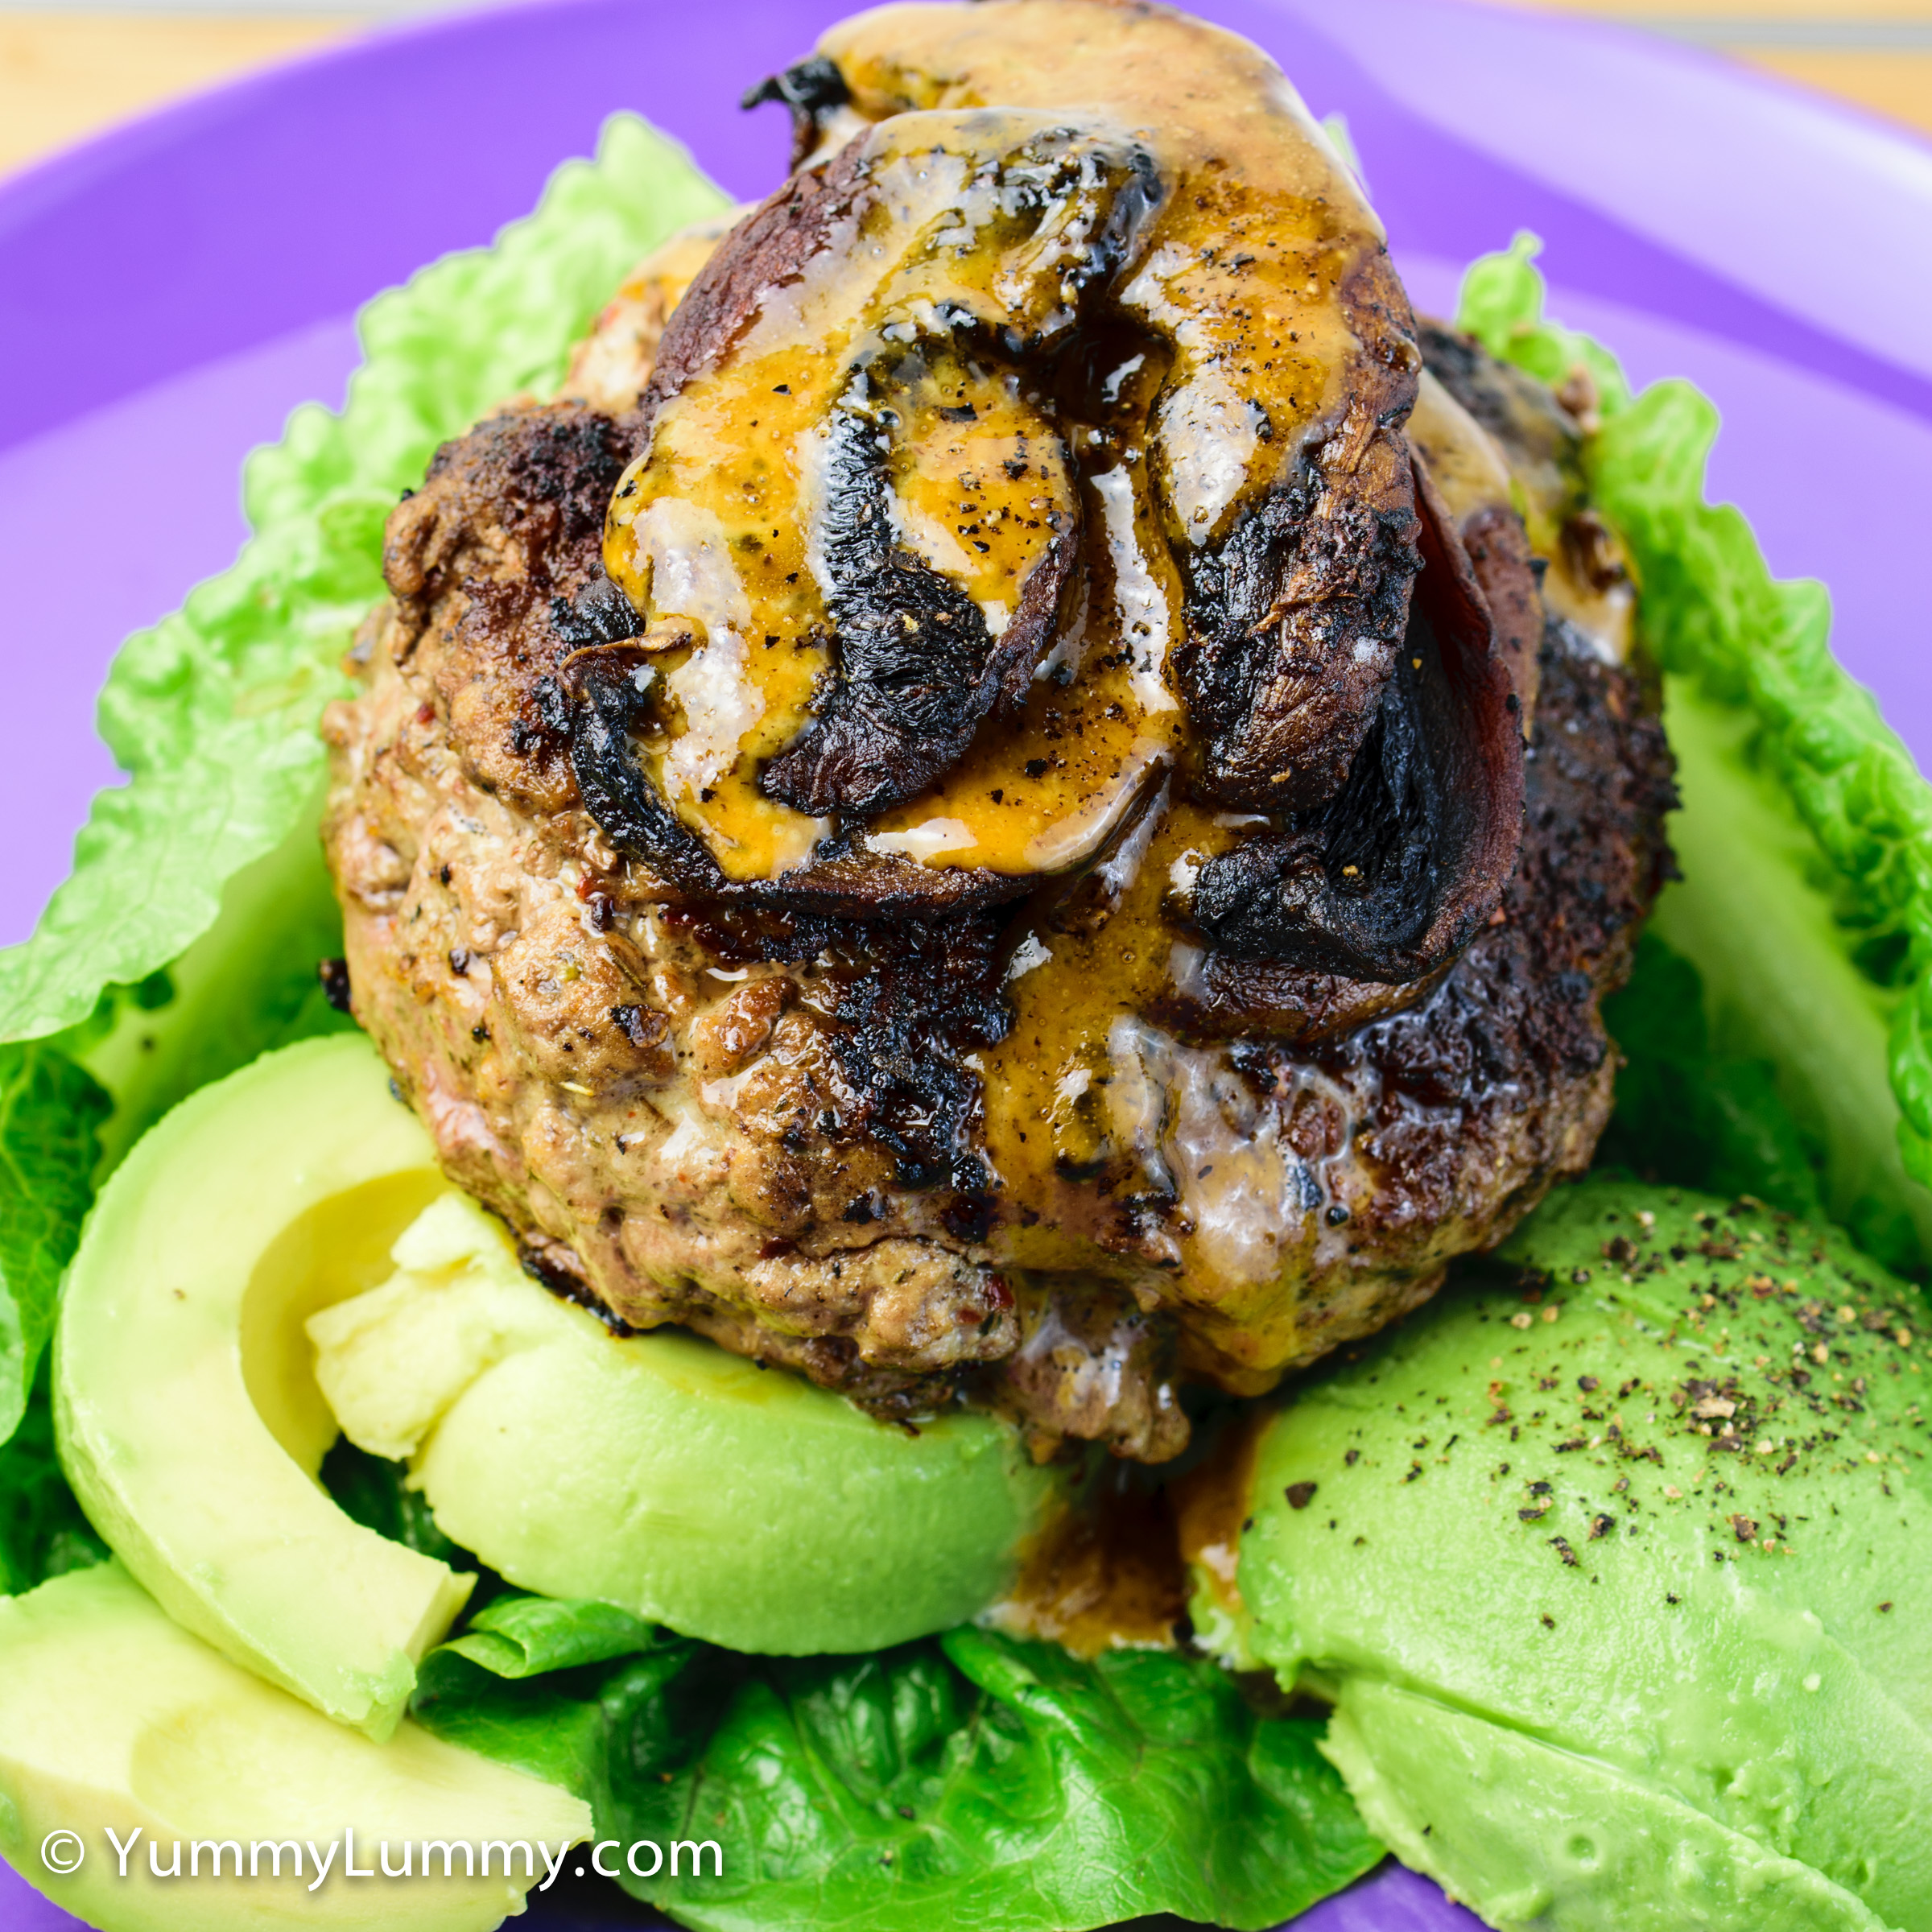 Happy hump day dinner. Nude burger with avocado and mushrooms.